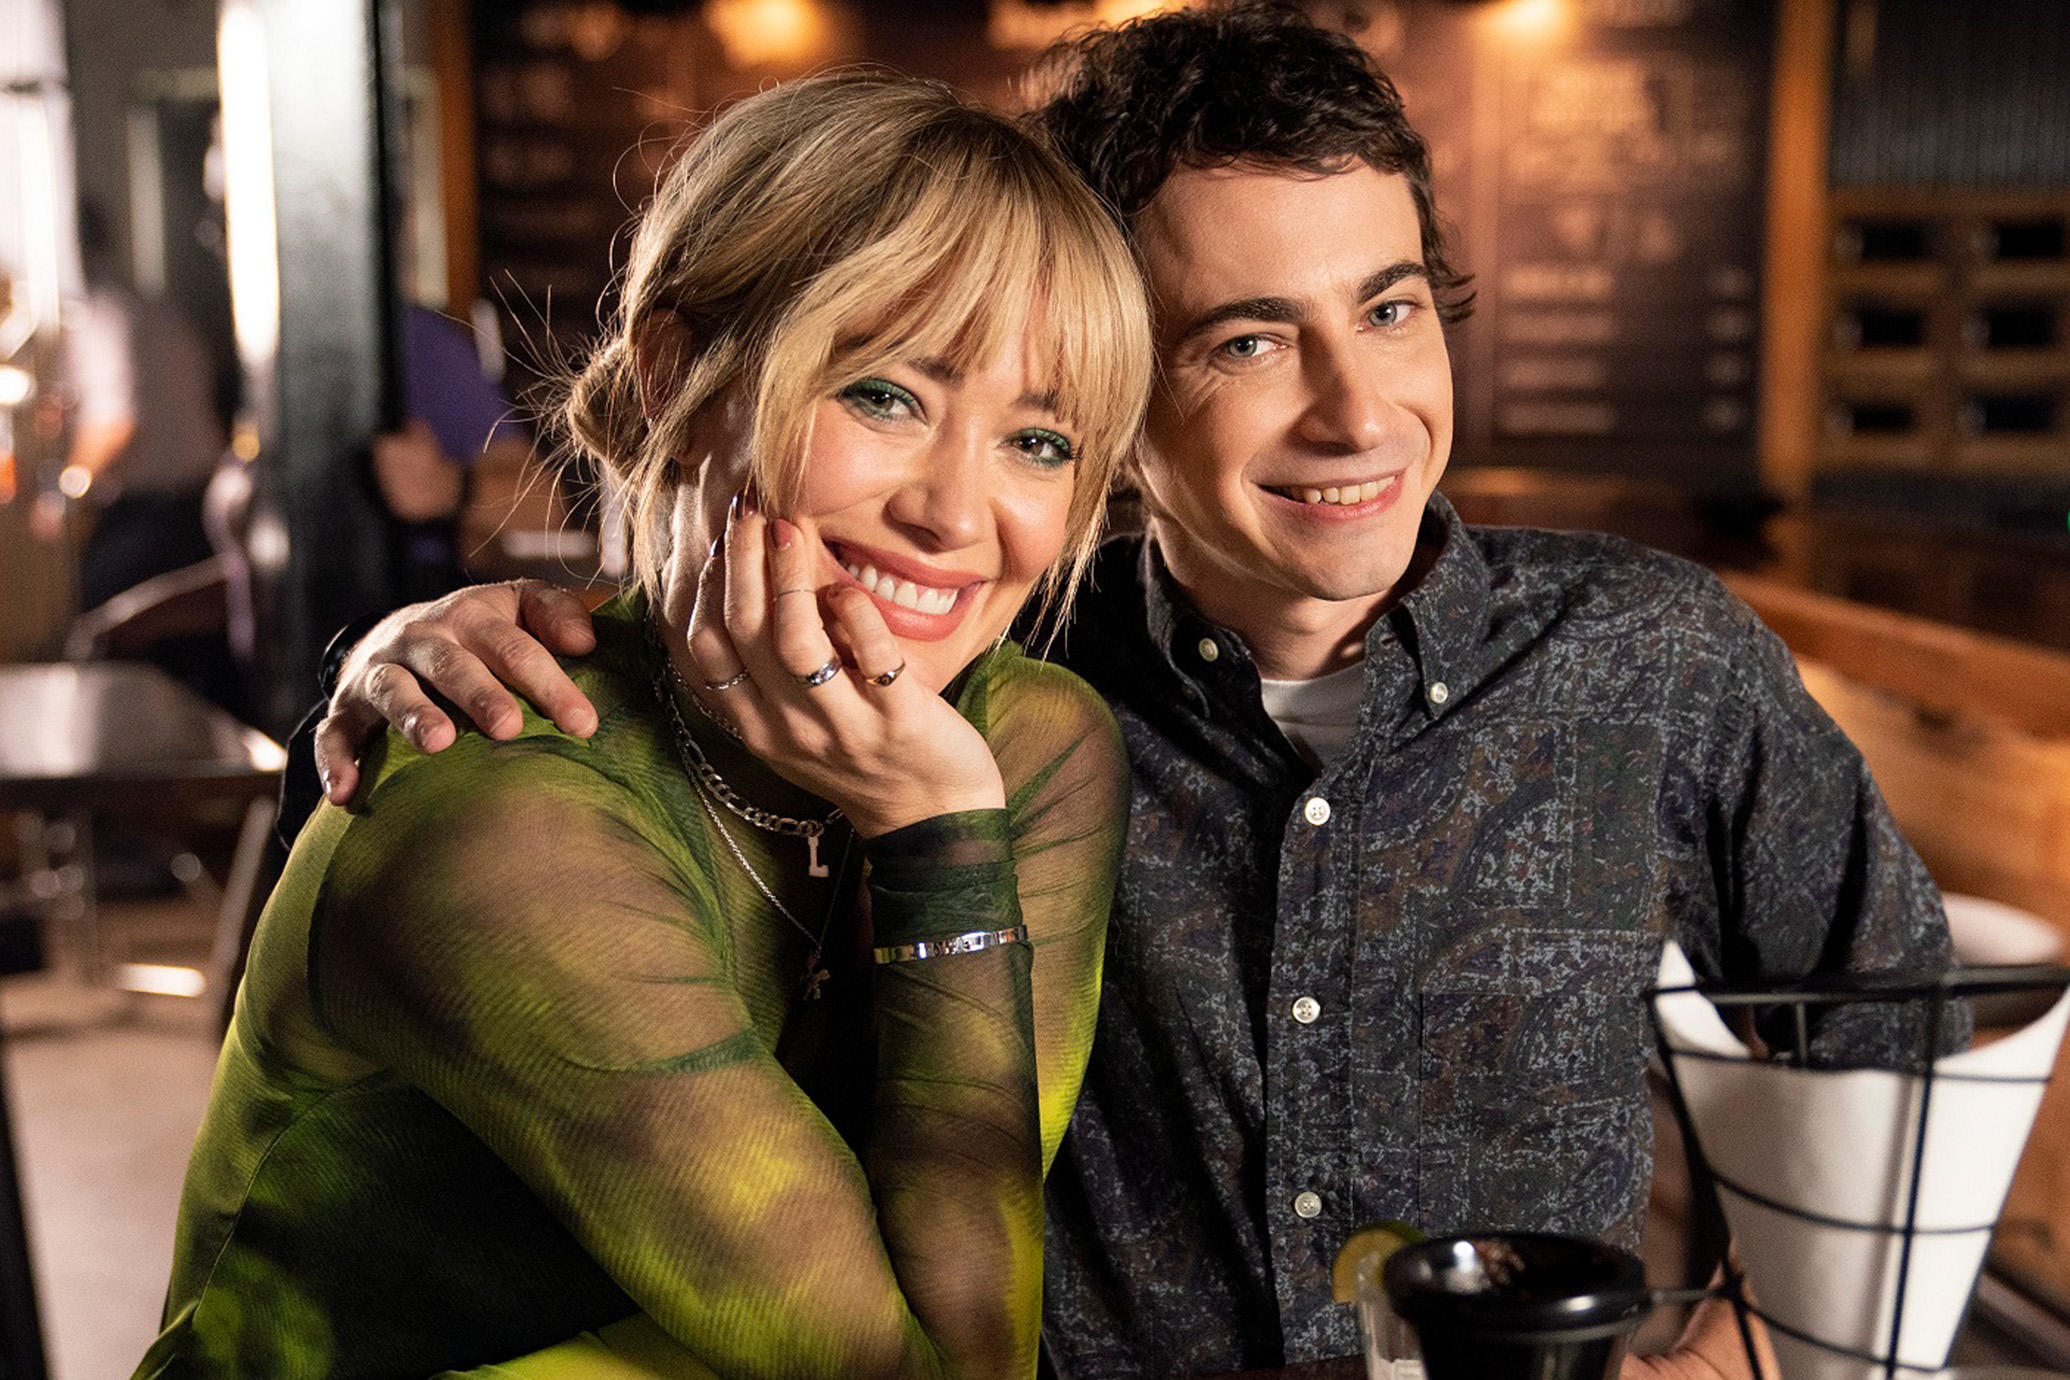 Hilary Duff and Adam Lamberg on set for binge-worthy Lizzie McGuire revival.